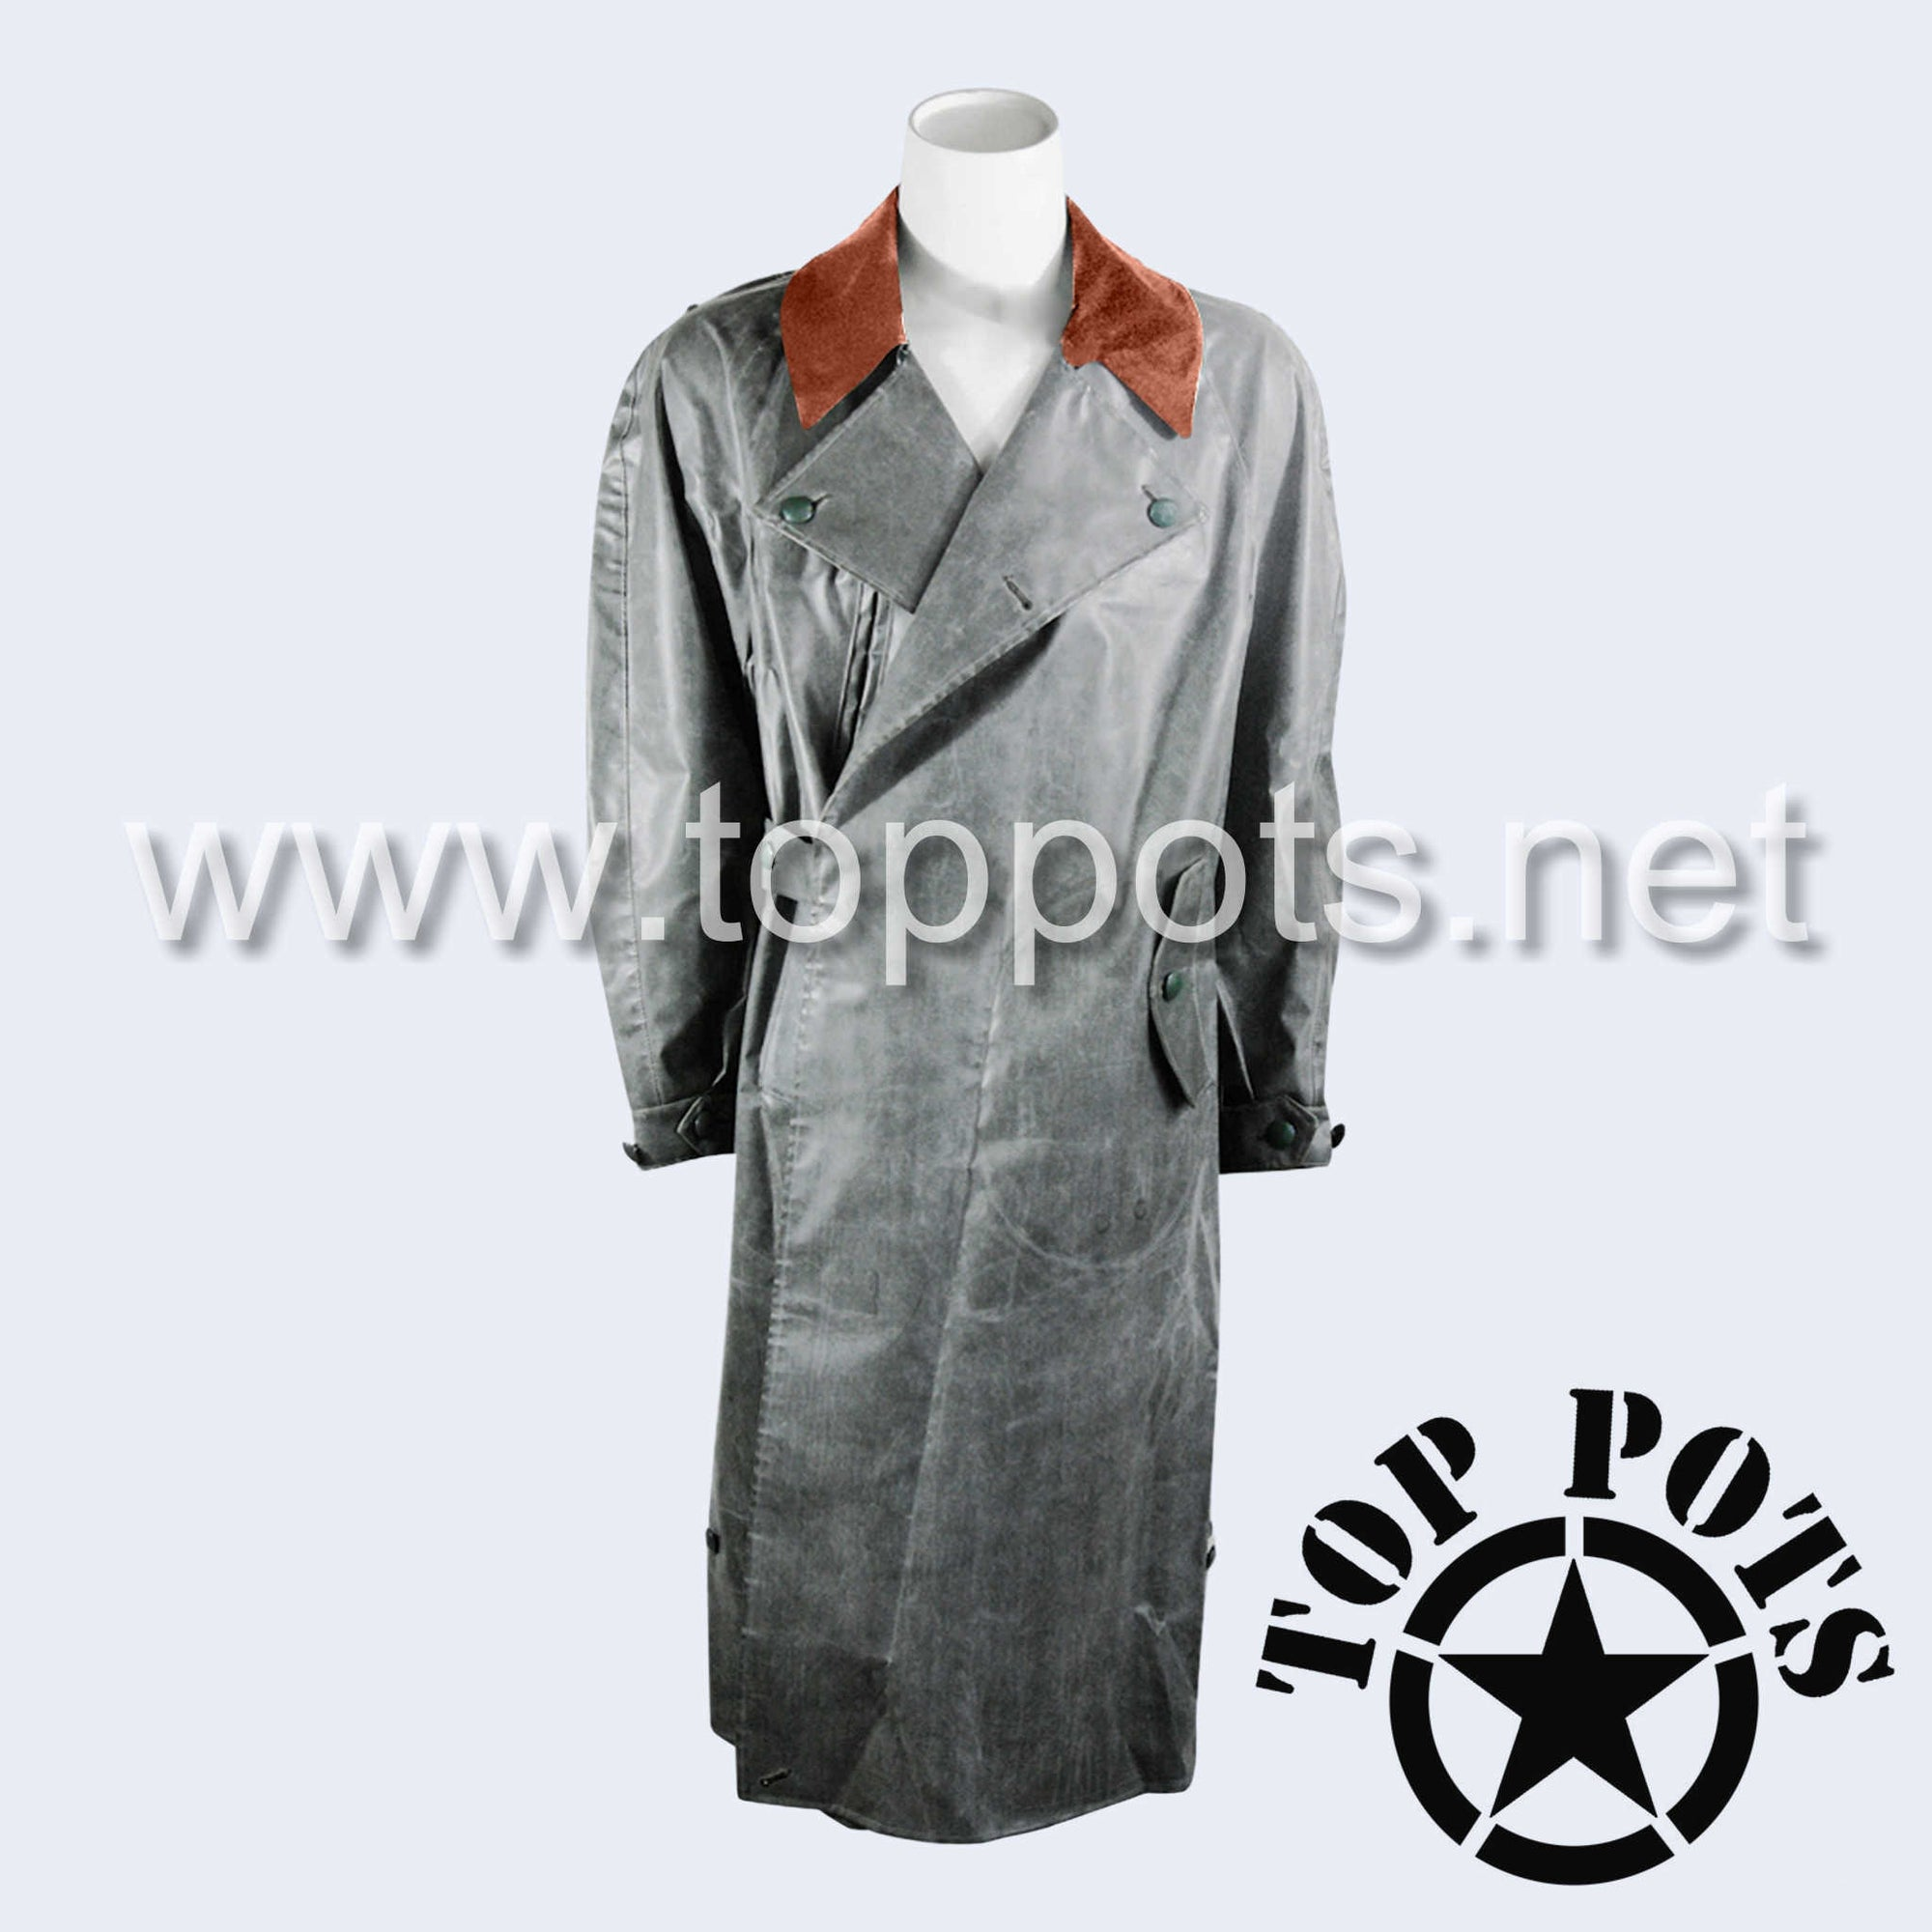 WWII German Army Heer Wehrmacht Field Police Officer Uniform Rubberizer Motorcycle Raincoat Jacket - Ordnungspolizei